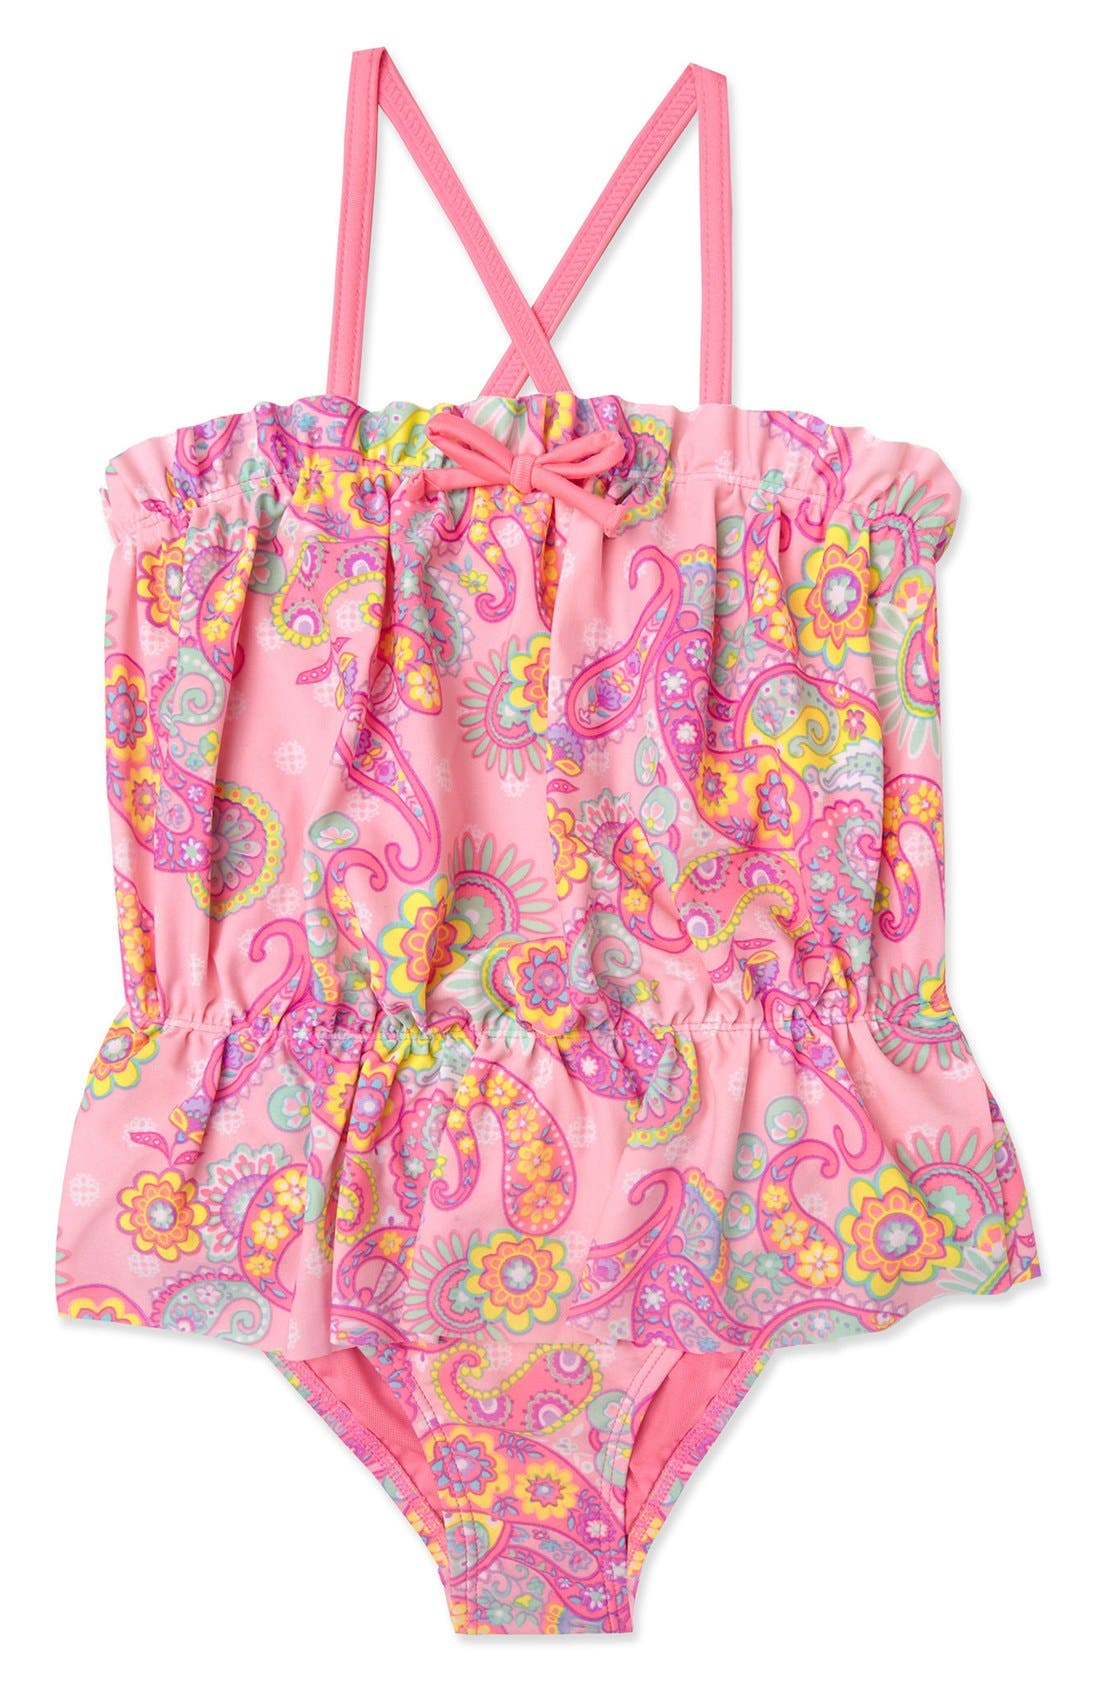 Hula Star 'Enchanted Paisley' One-Piece Swimsuit (Toddler Girls & Little Girls)